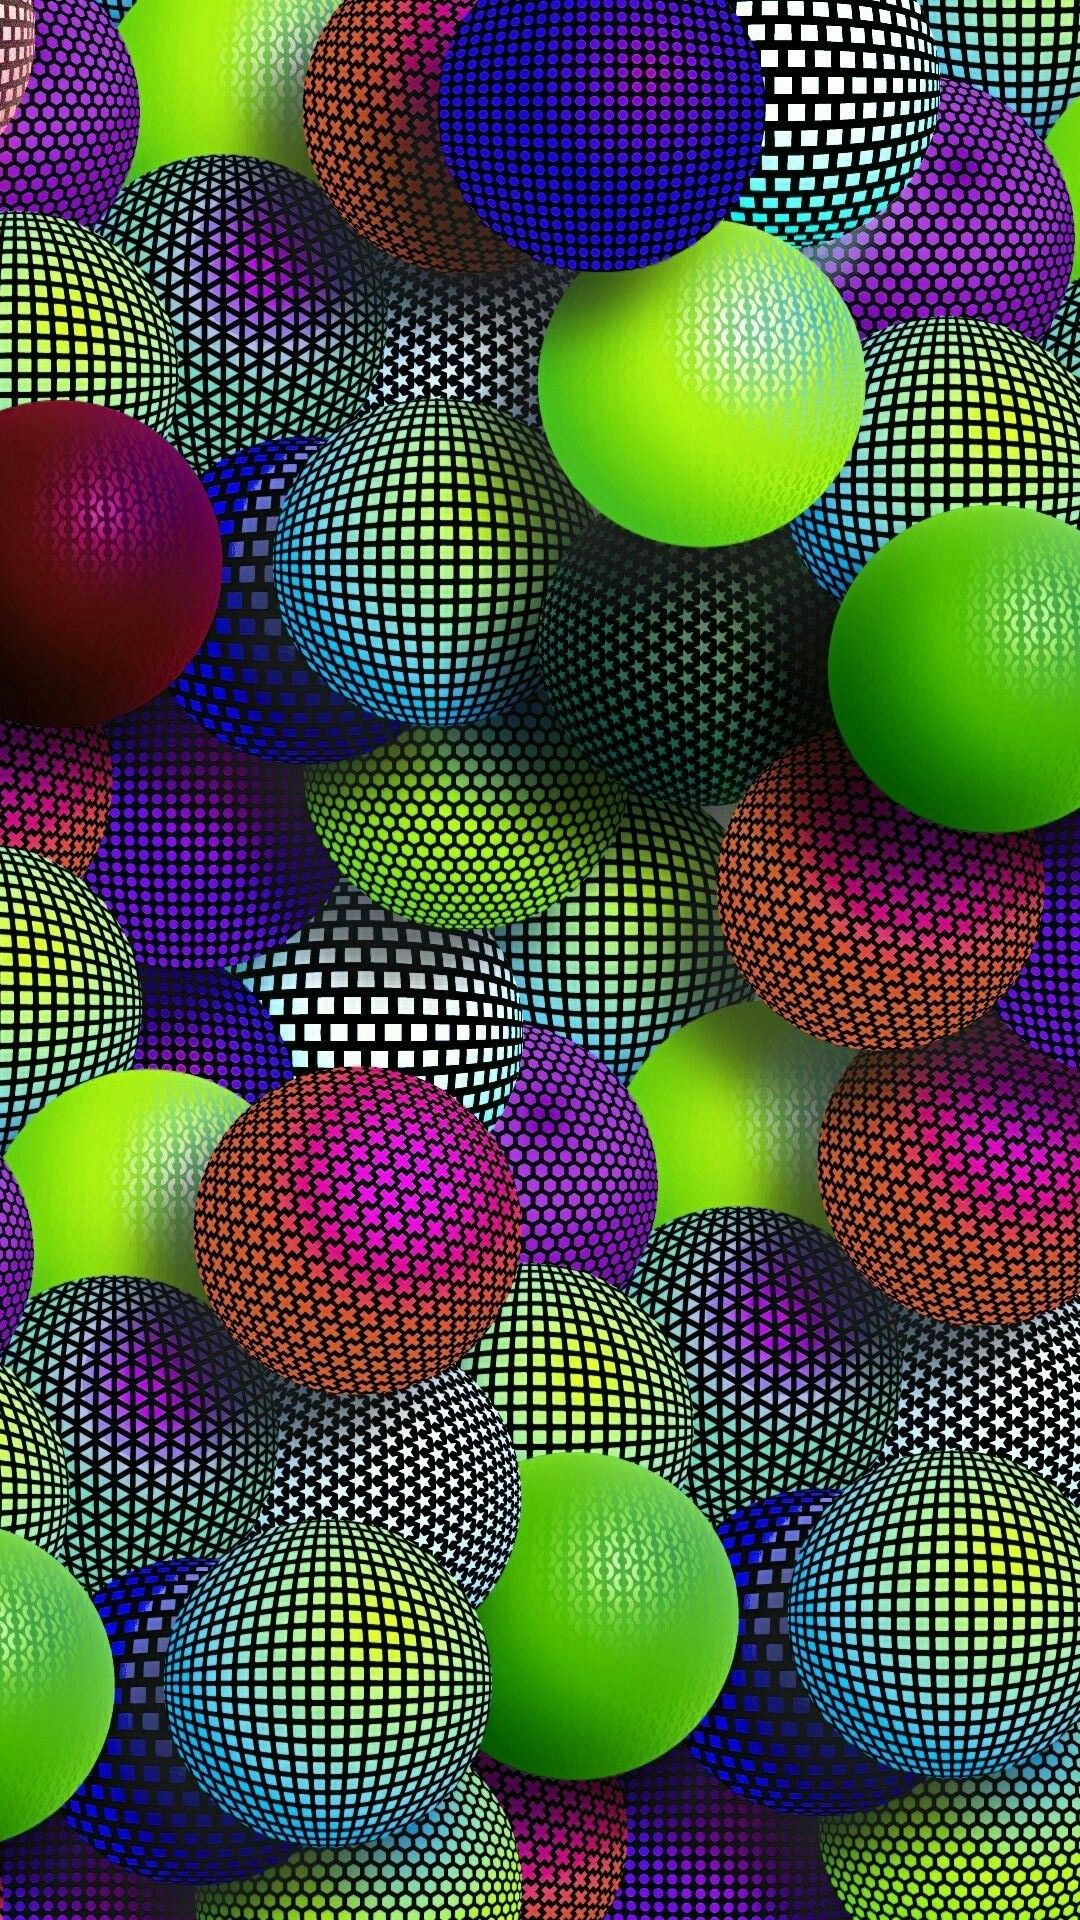 Unduh 1000 Wallpaper Android Hd Colorful  Gratis